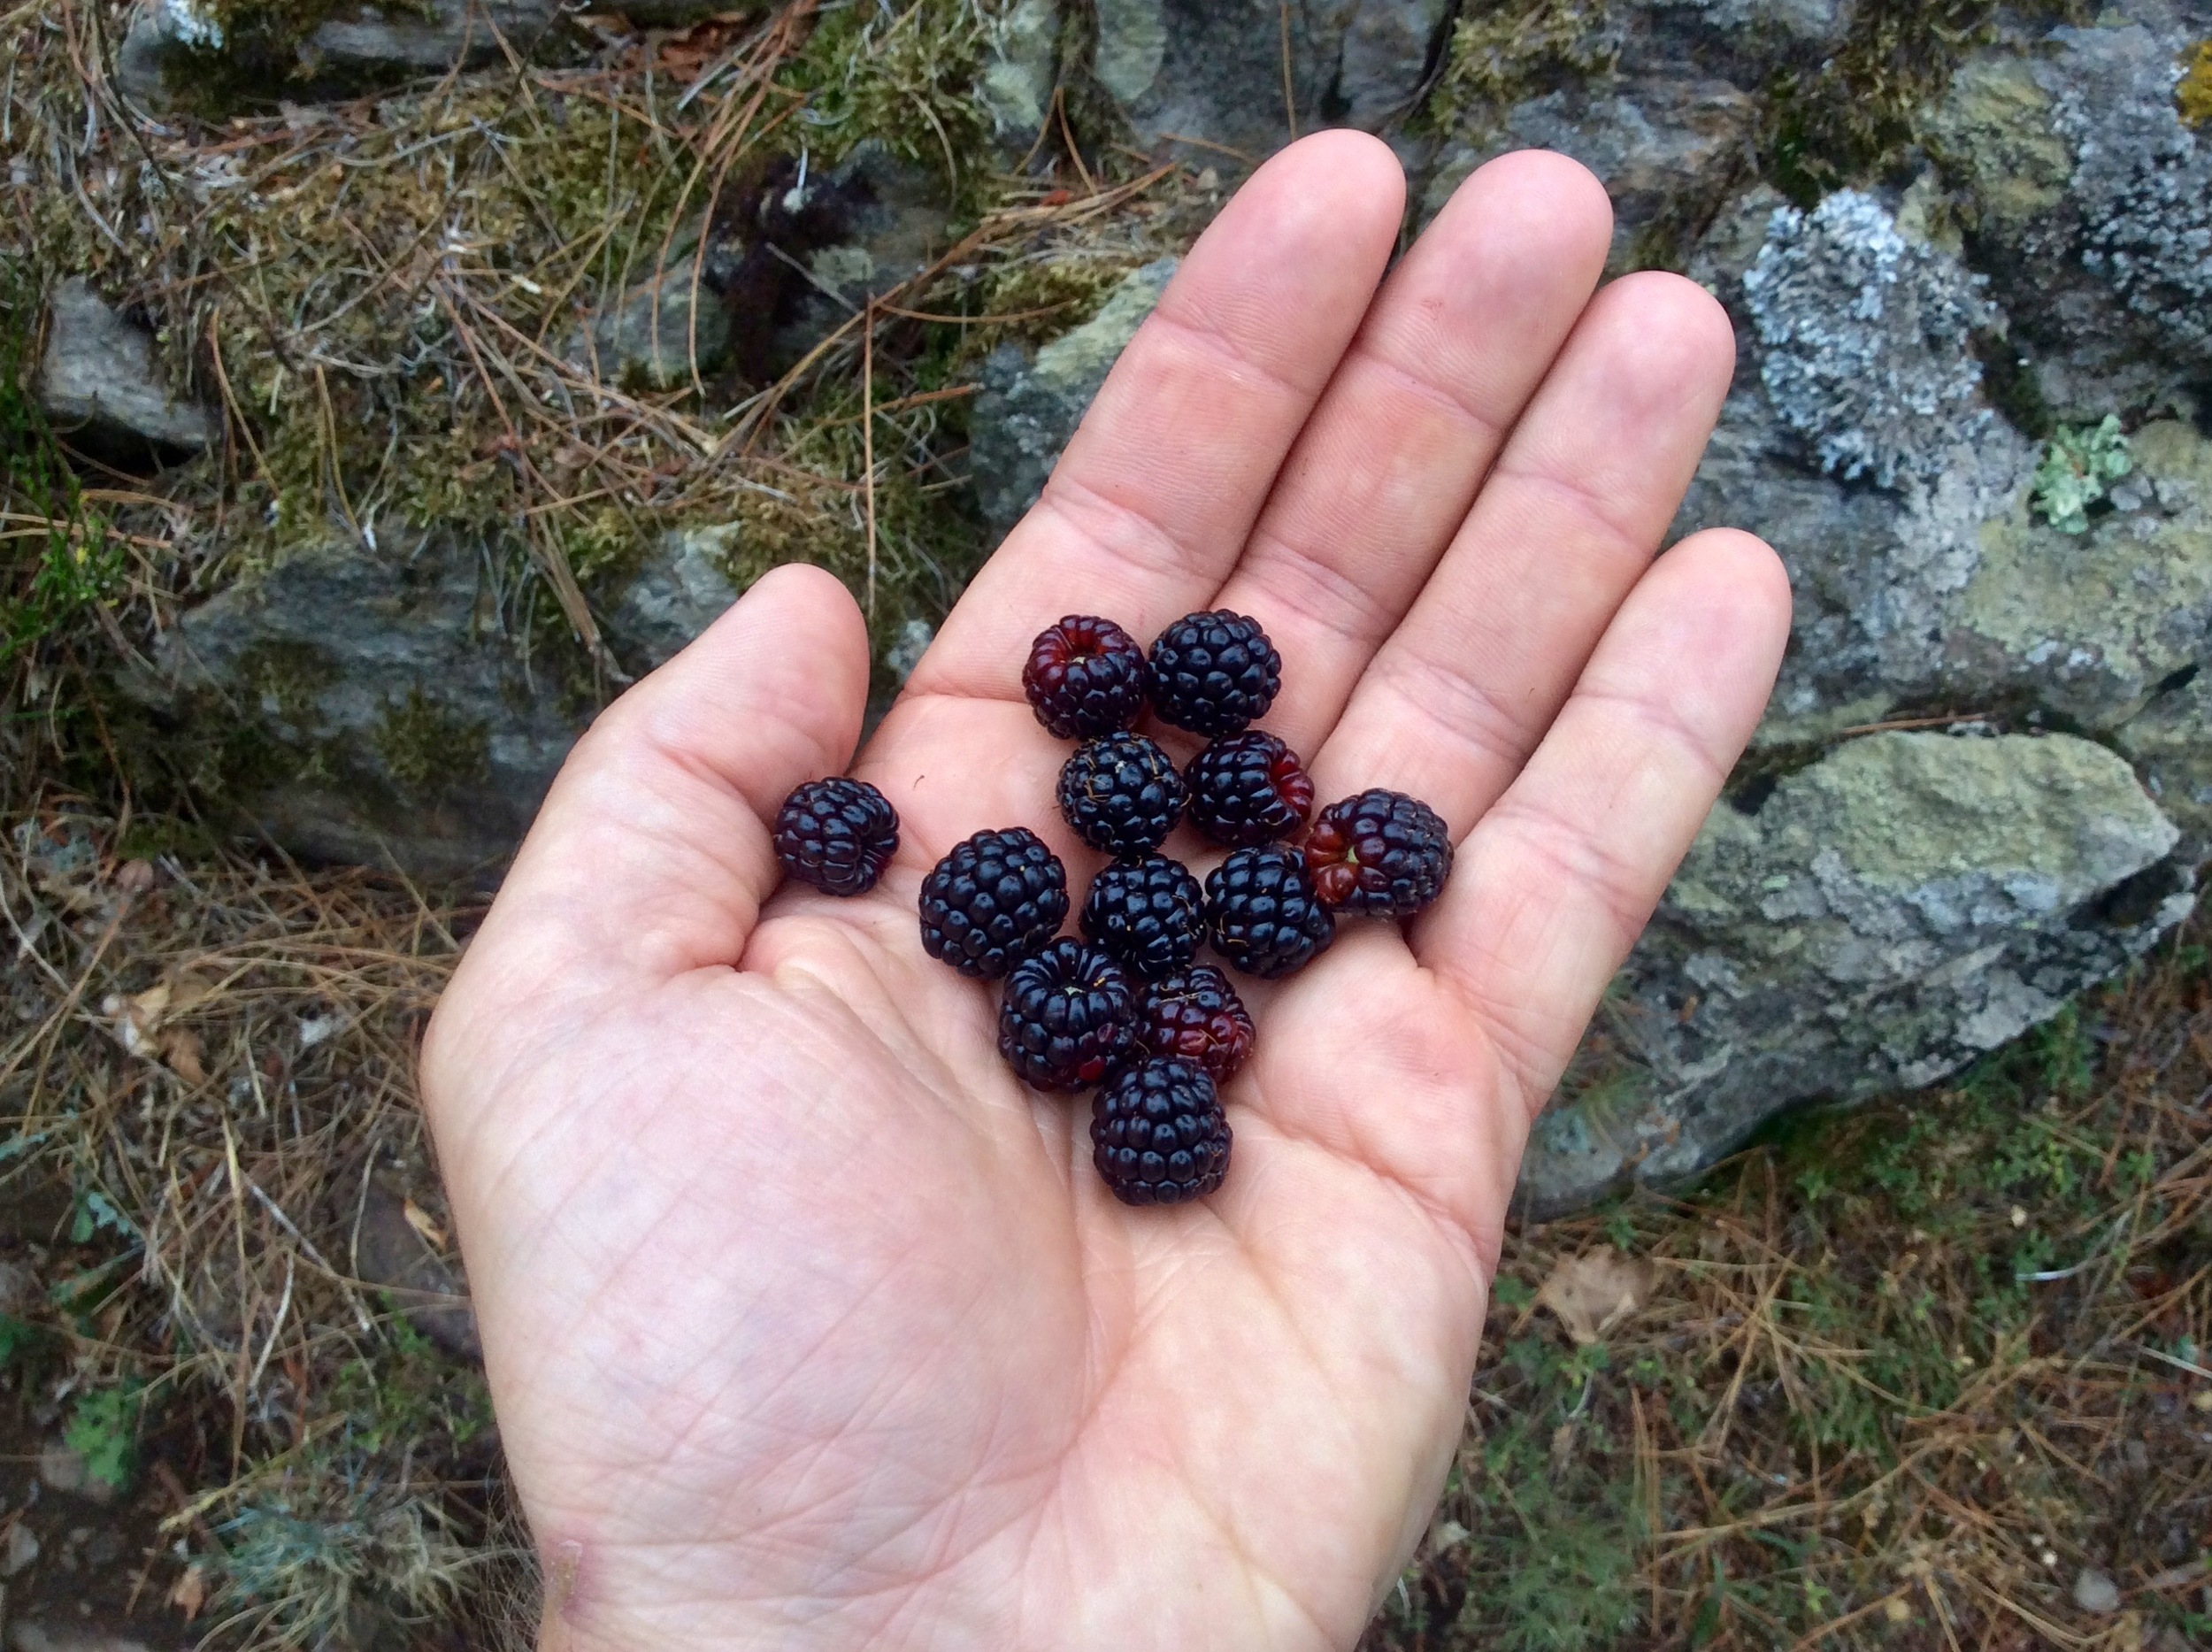 An abundance of wild blackberries